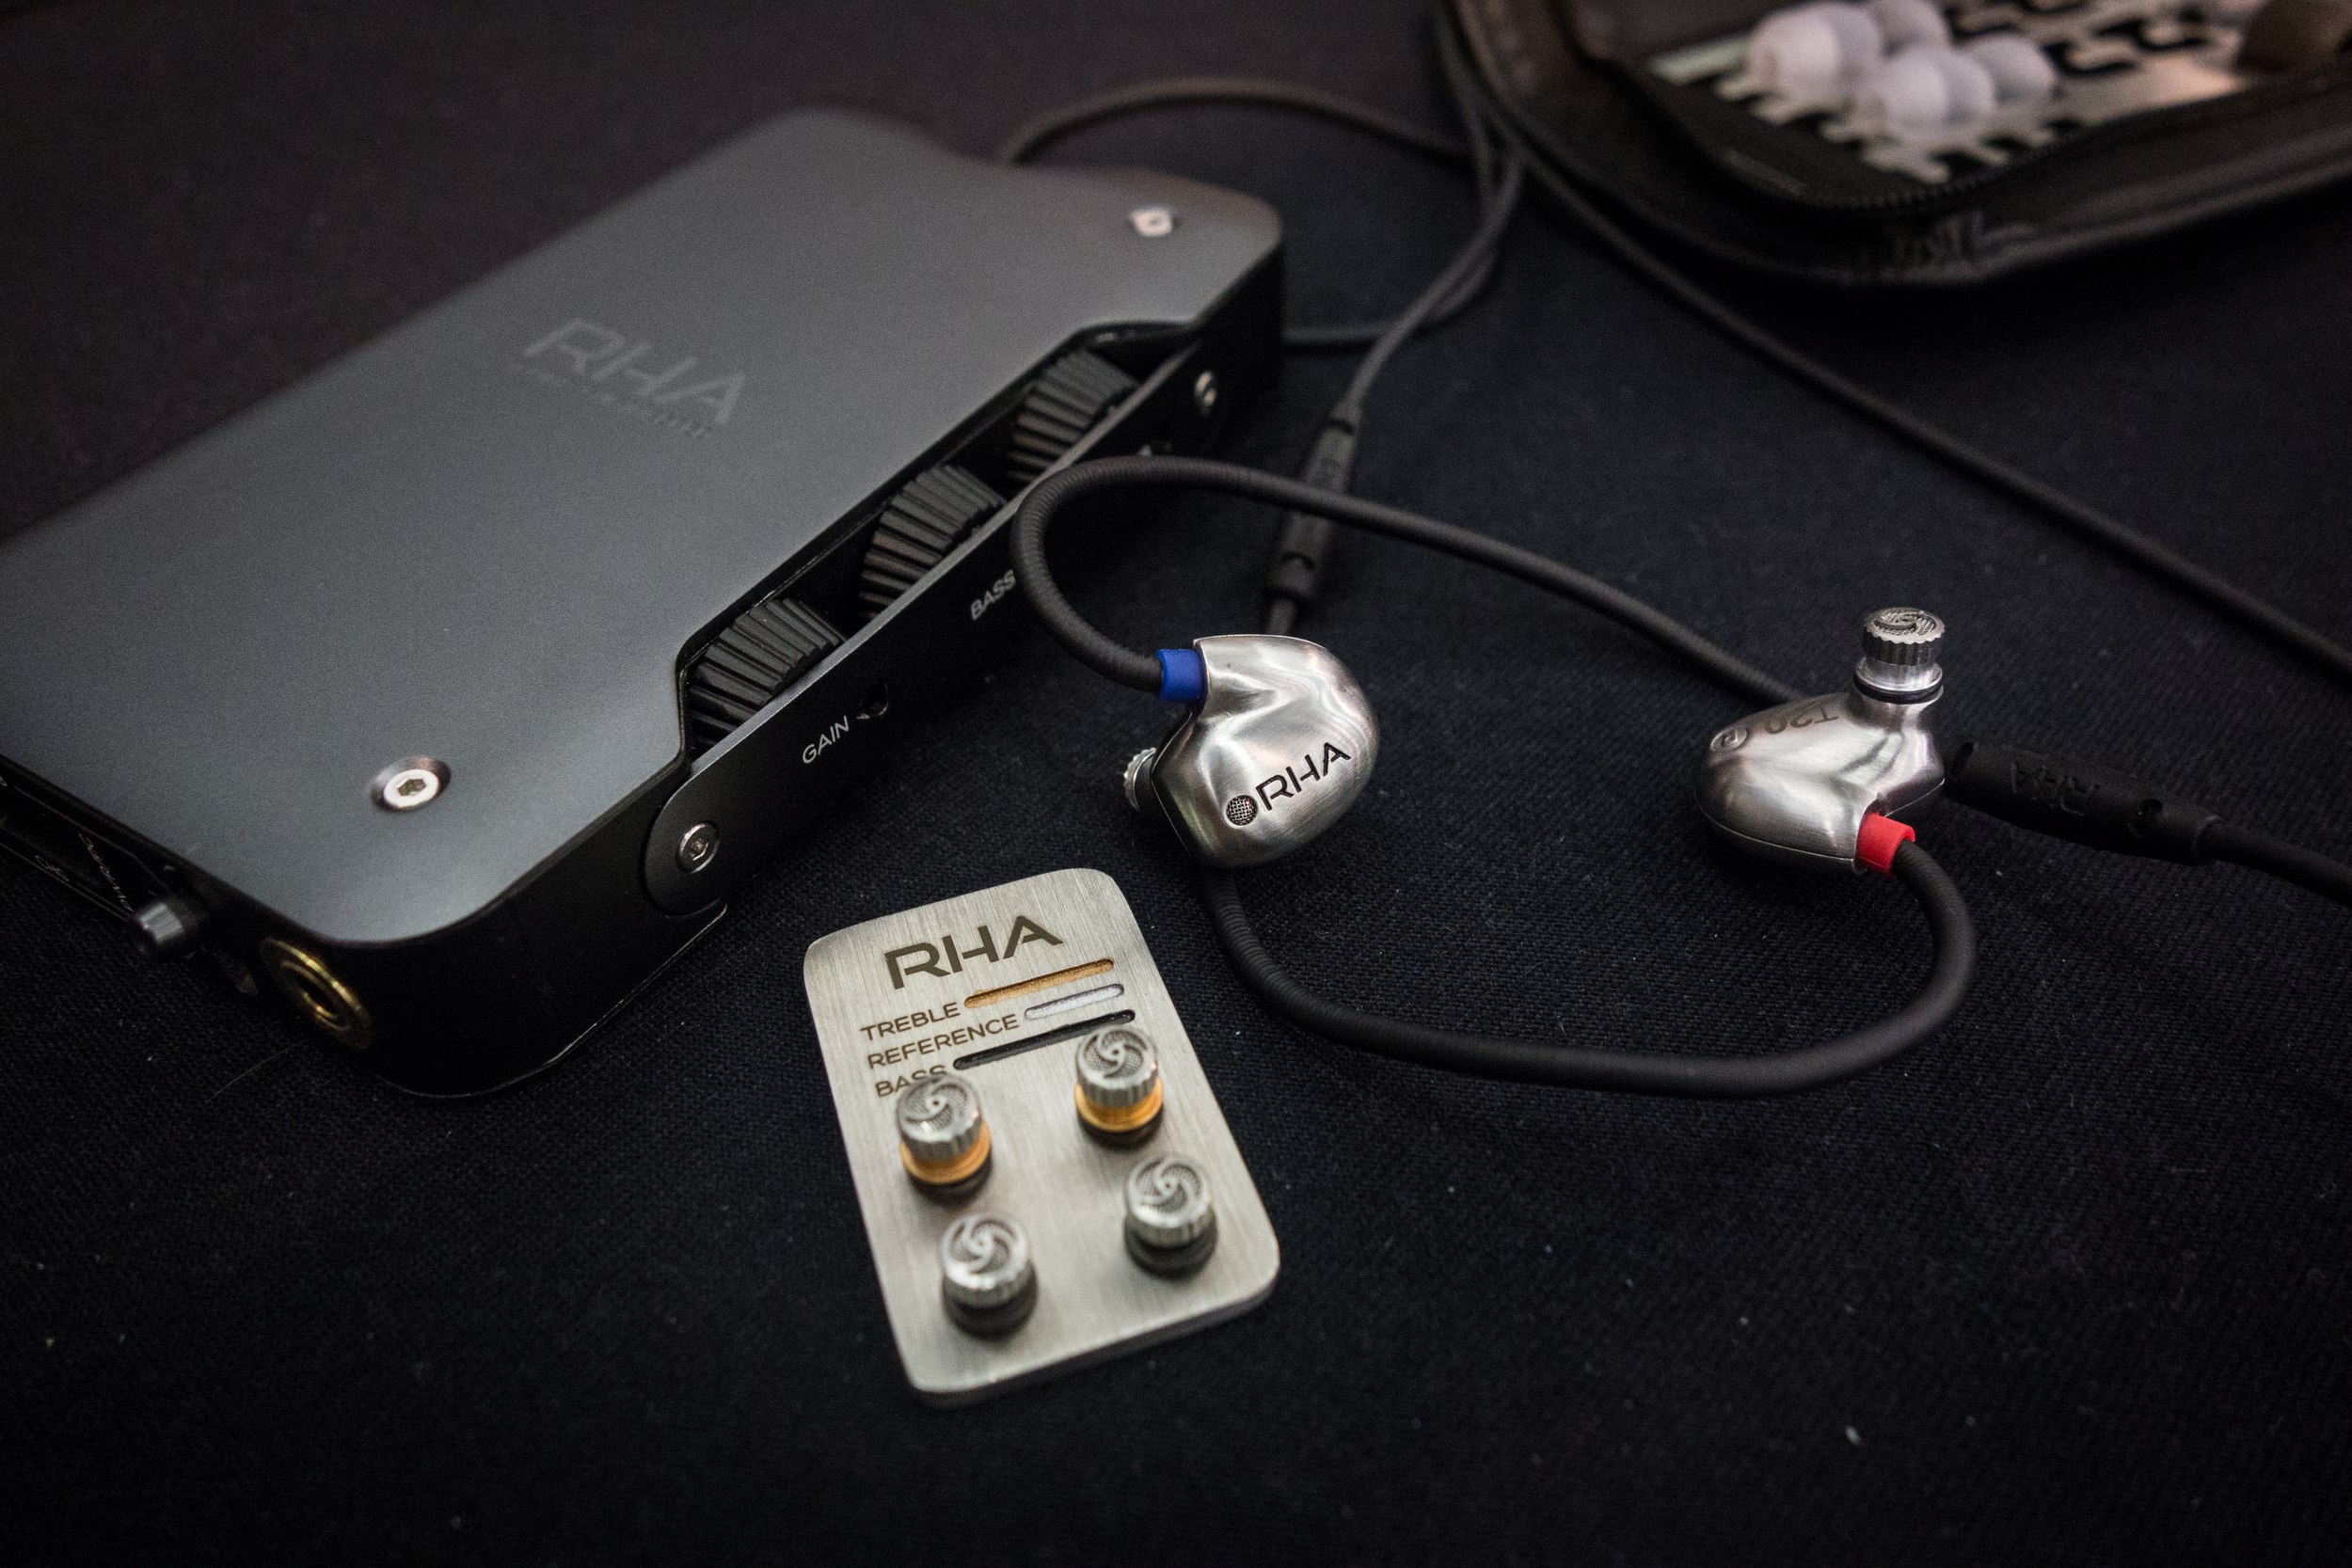 The RHA T20 IEM and the mysterious RHA DAC and amplifier due to be released next year.